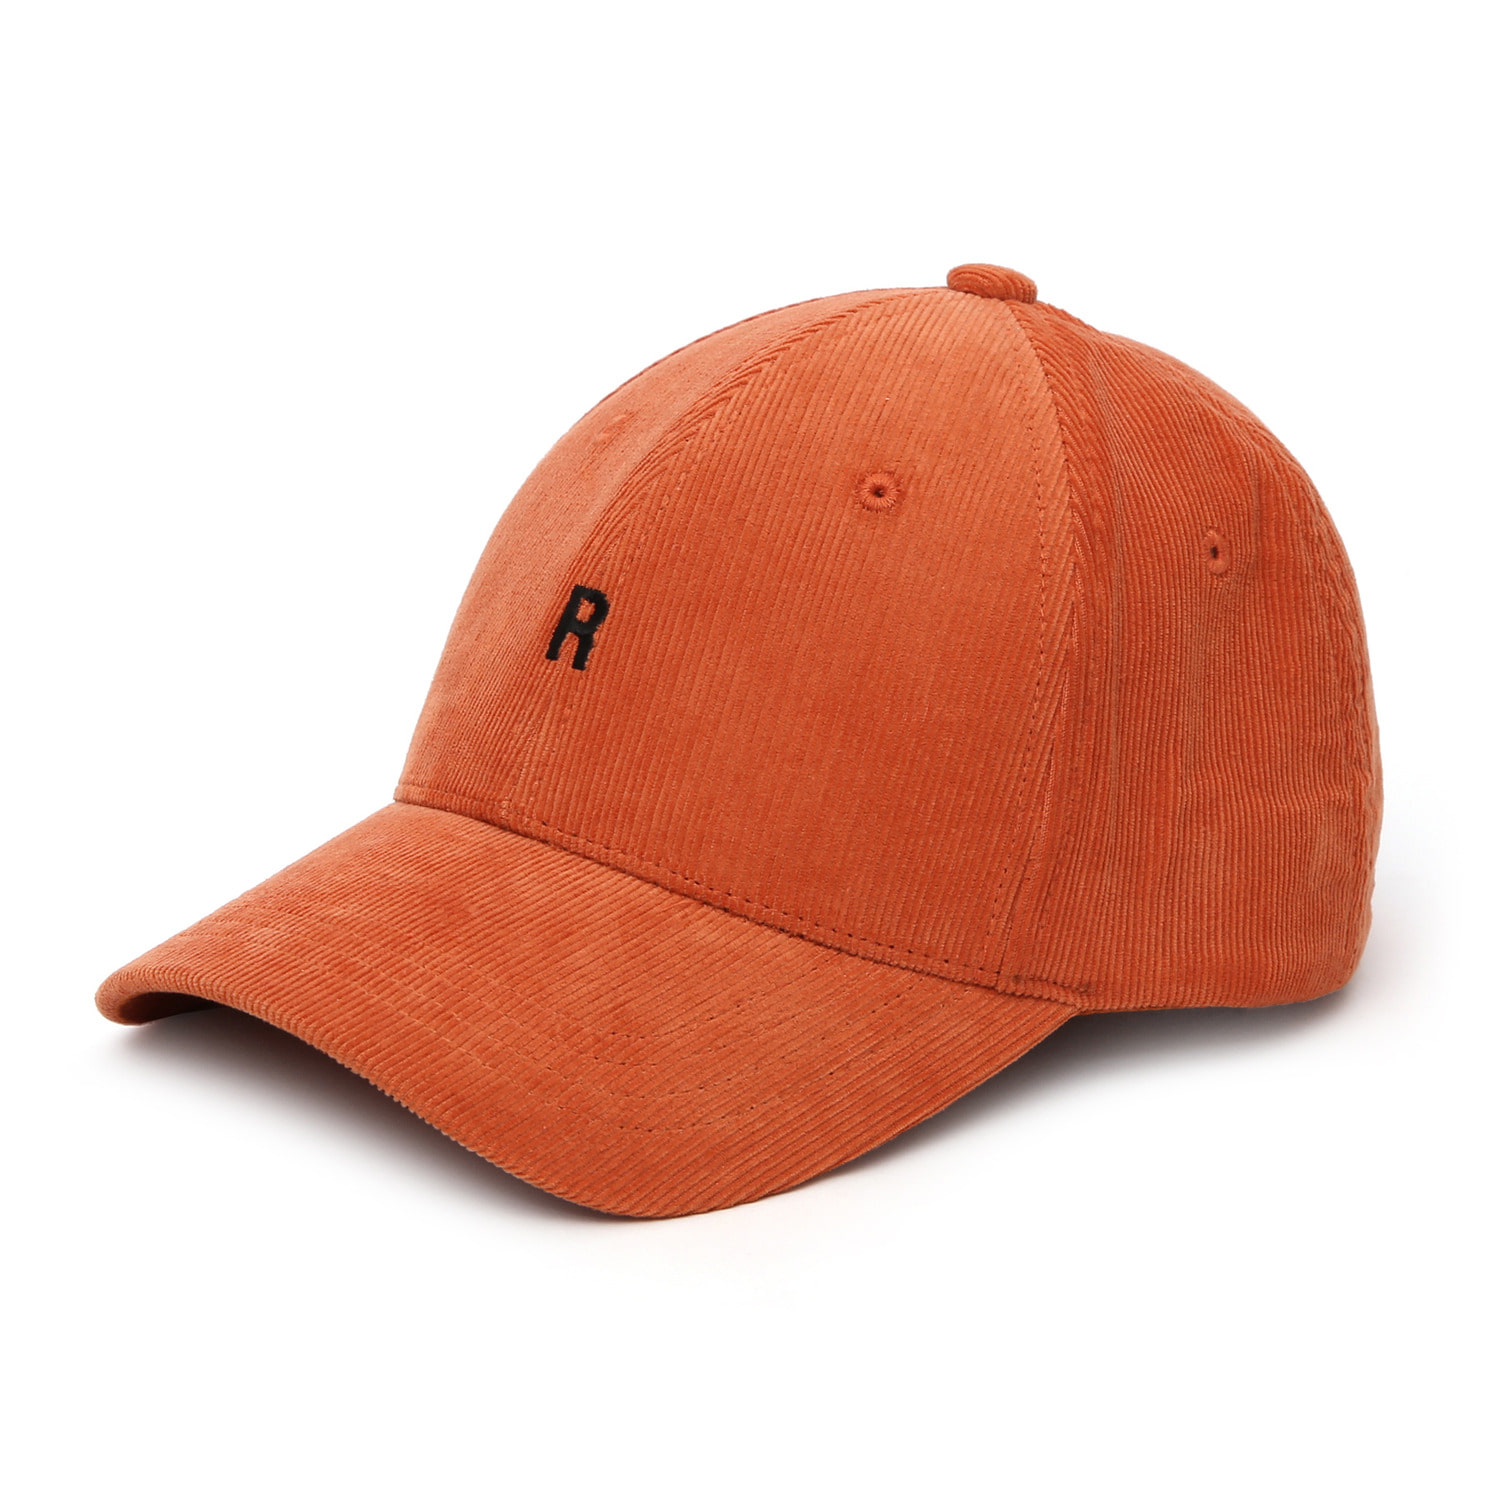 SMALL LOGO / HARD TOP B B / CD / ORANGE